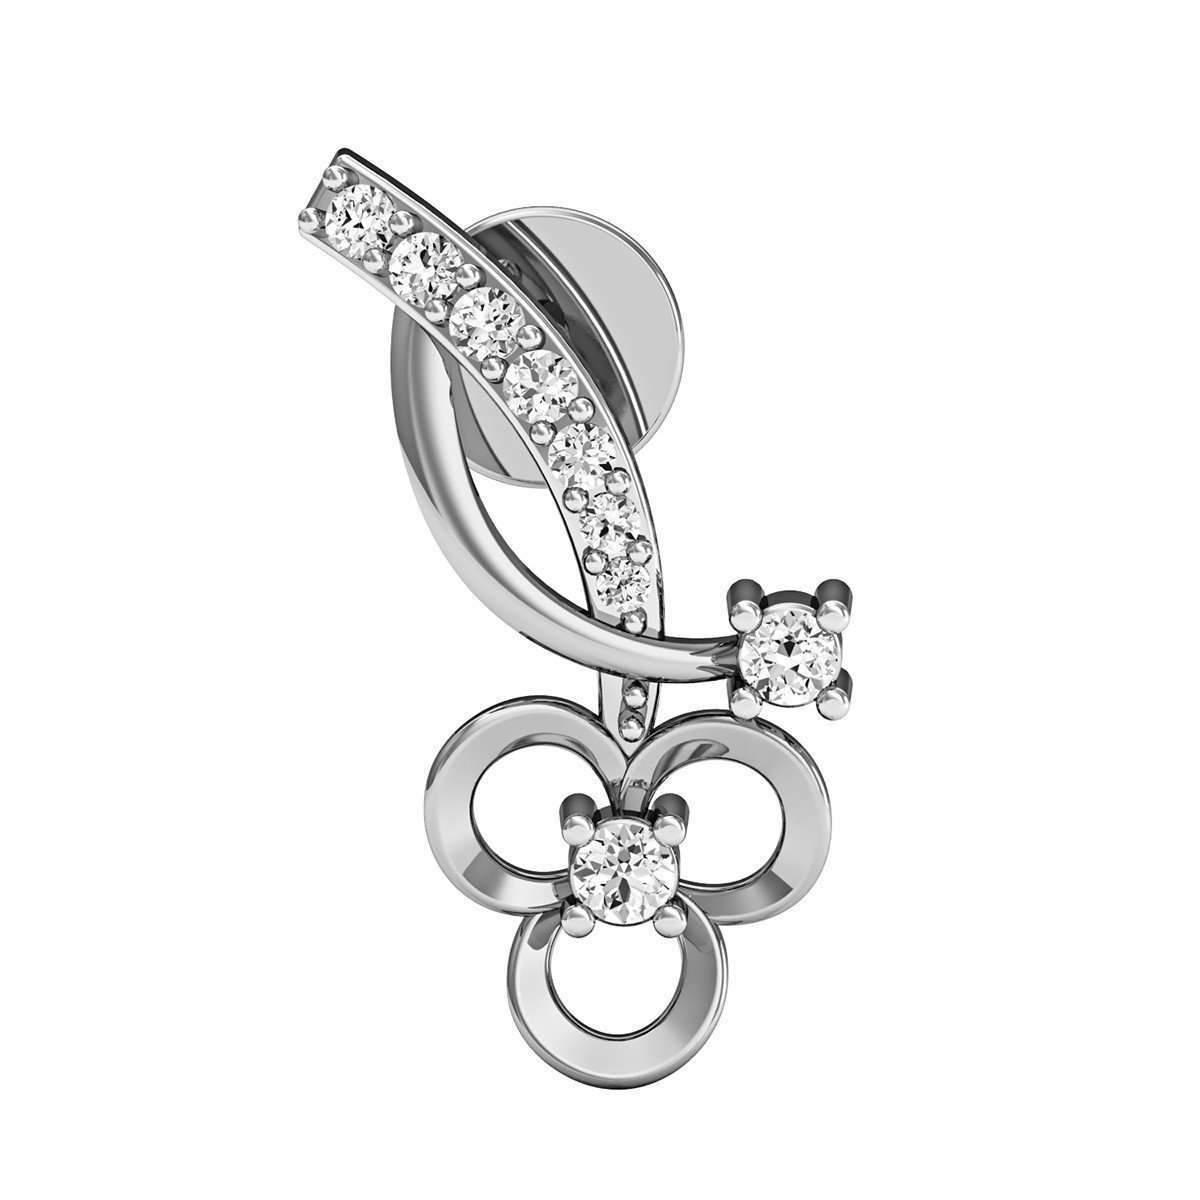 Diamoire Jewels Handmade 14kt White Gold and Diamond Earrings Inspired by Nature wMghXxI9TY